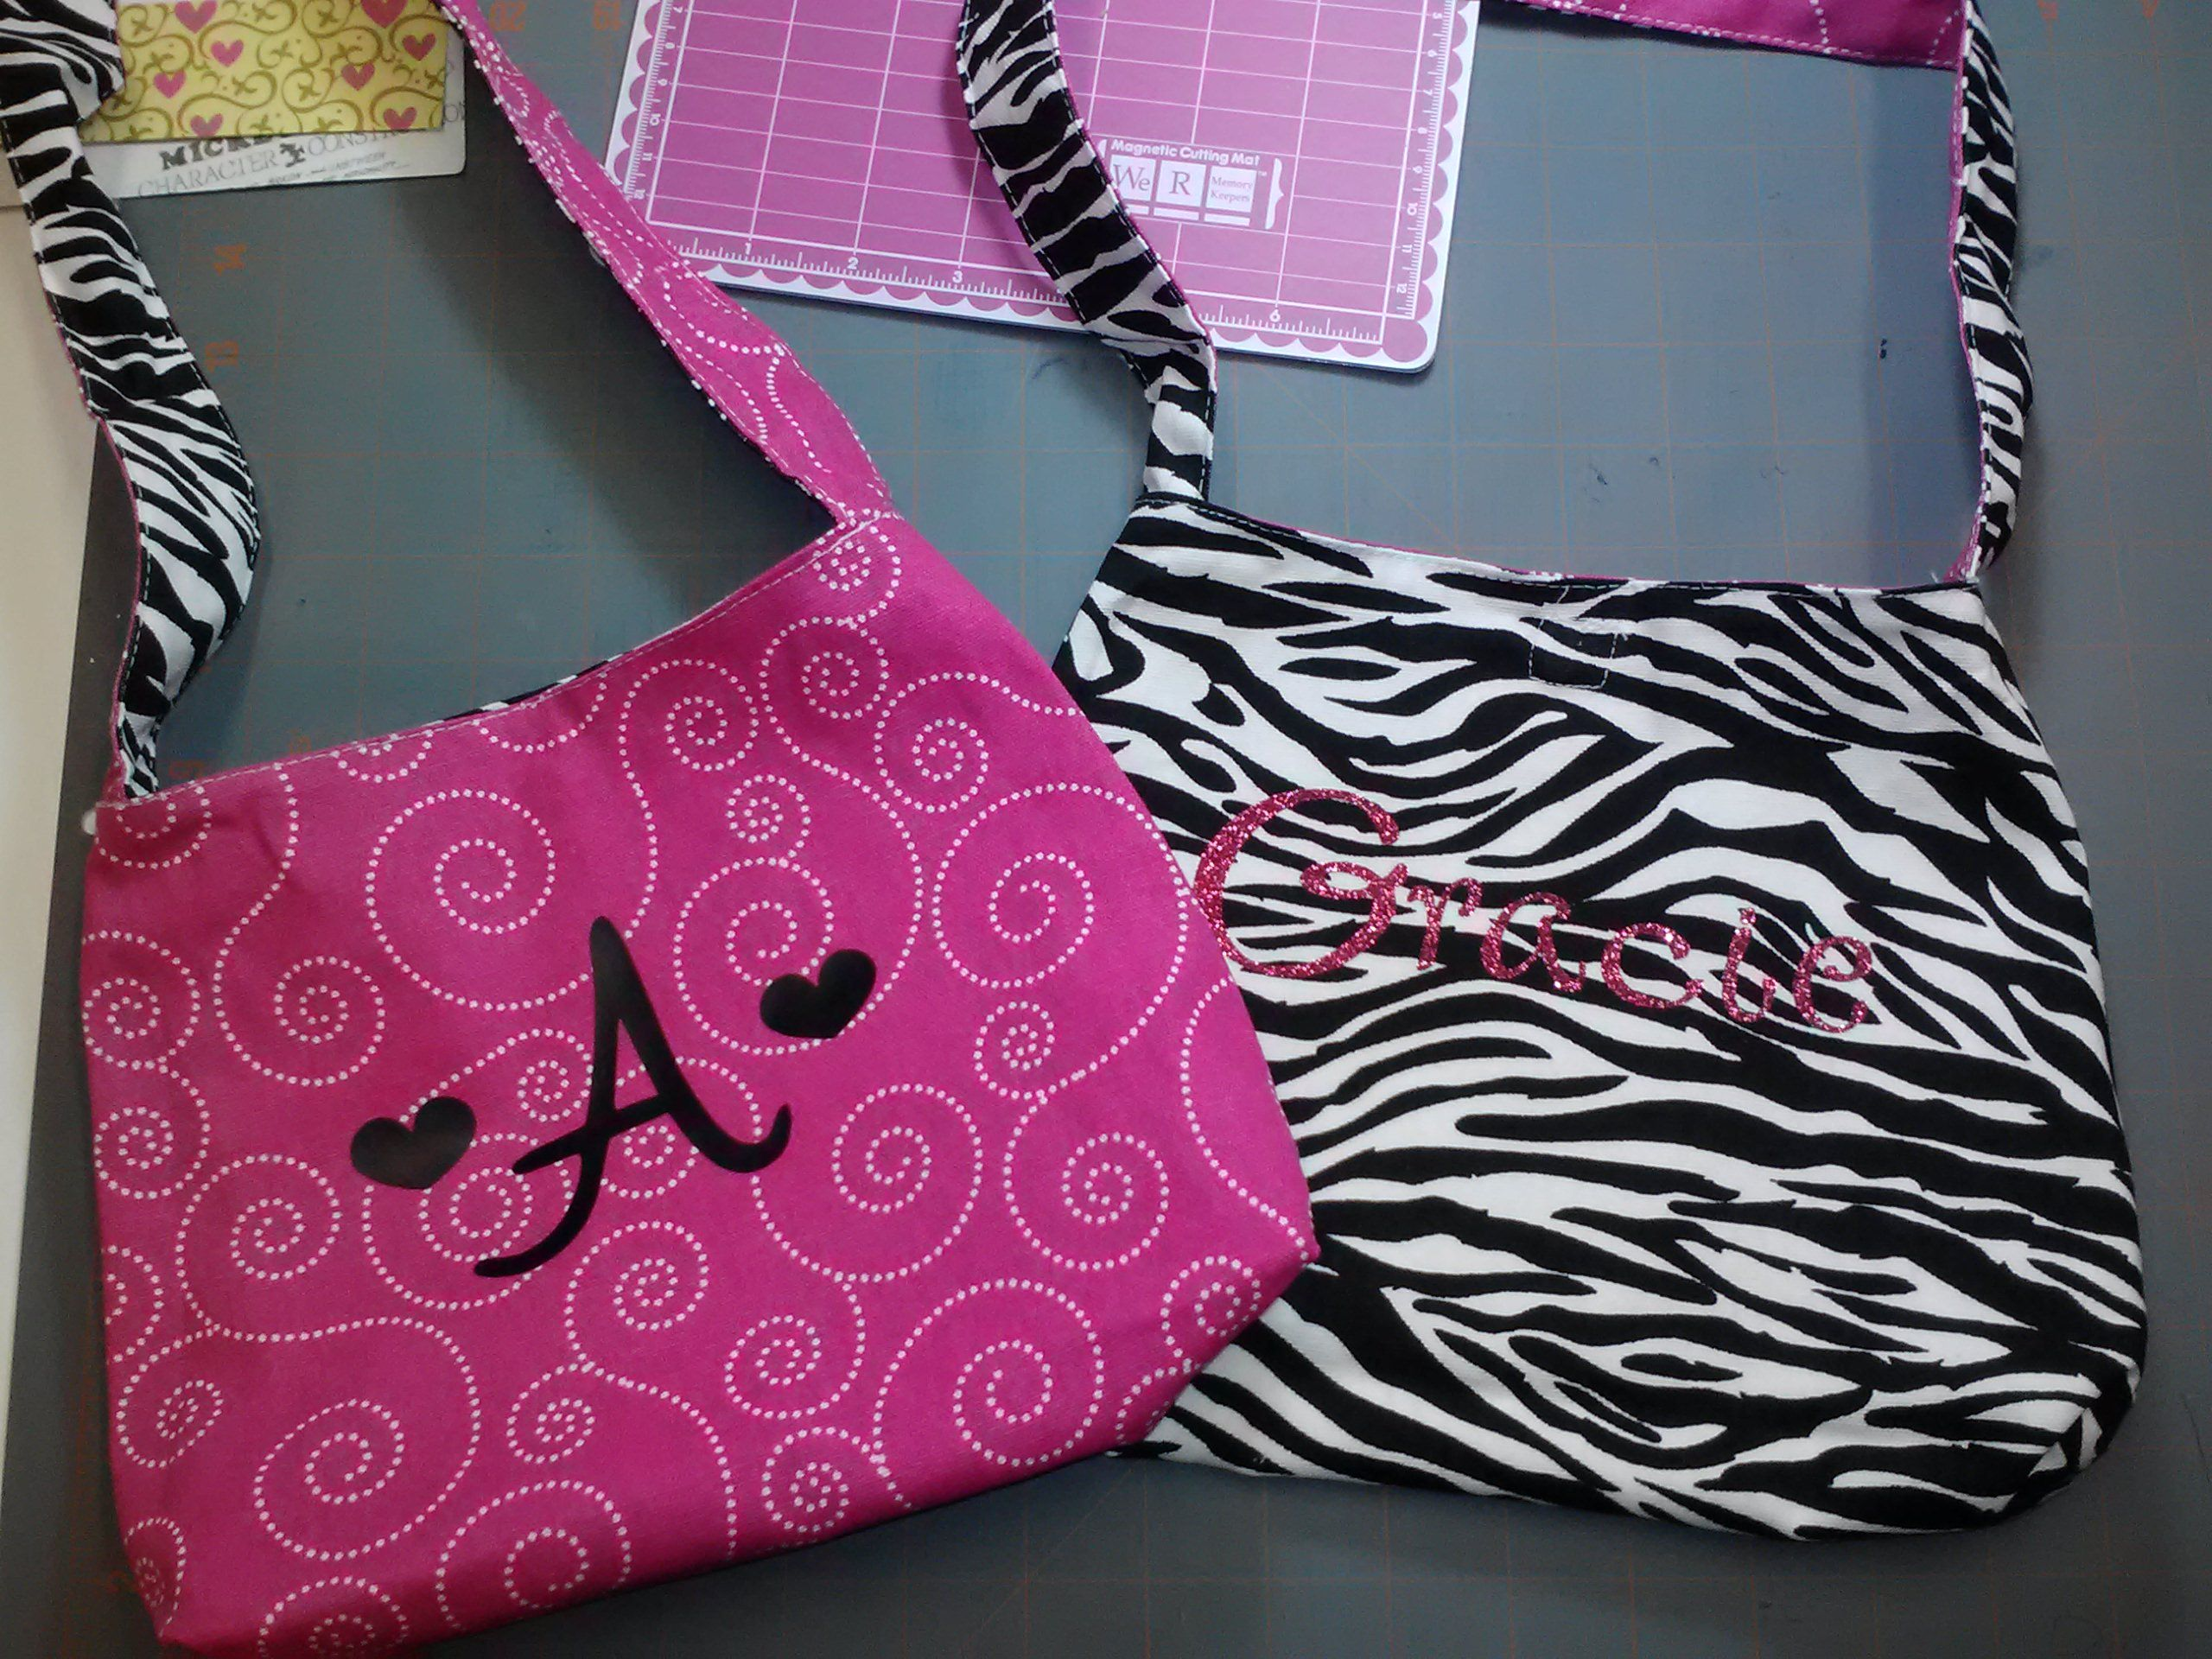 Hobby lobby craft bags - I Found These Reversible Bags At Hobby Lobby And I Used My Cricut And Heat Transfer